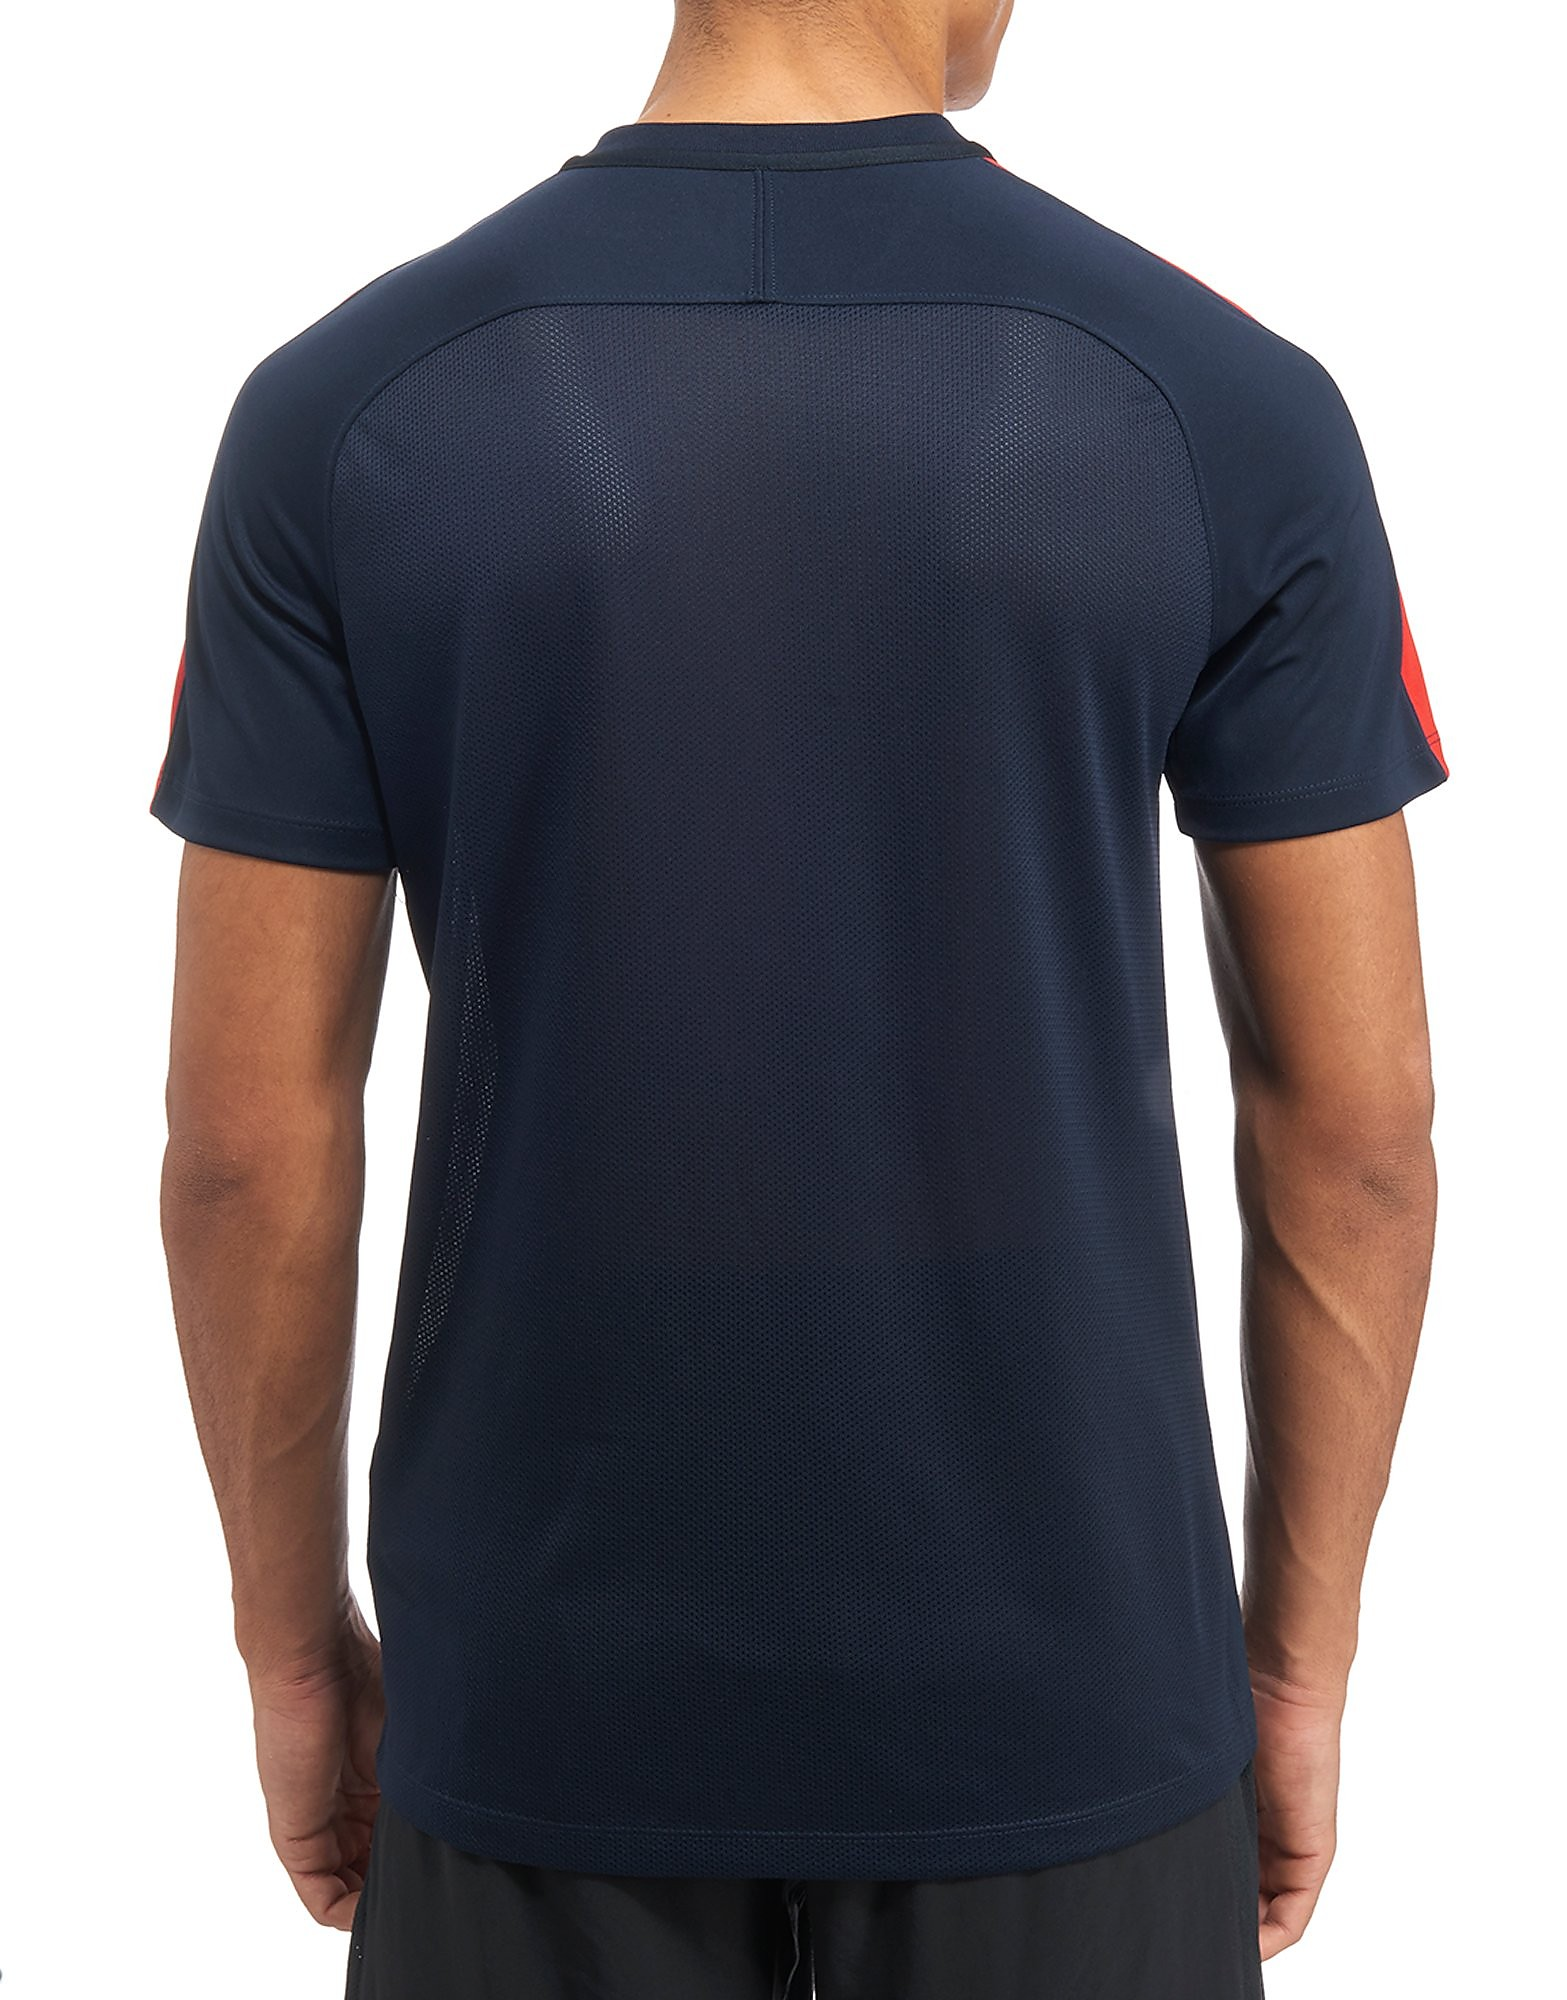 Nike Paris St Germain Training Shirt